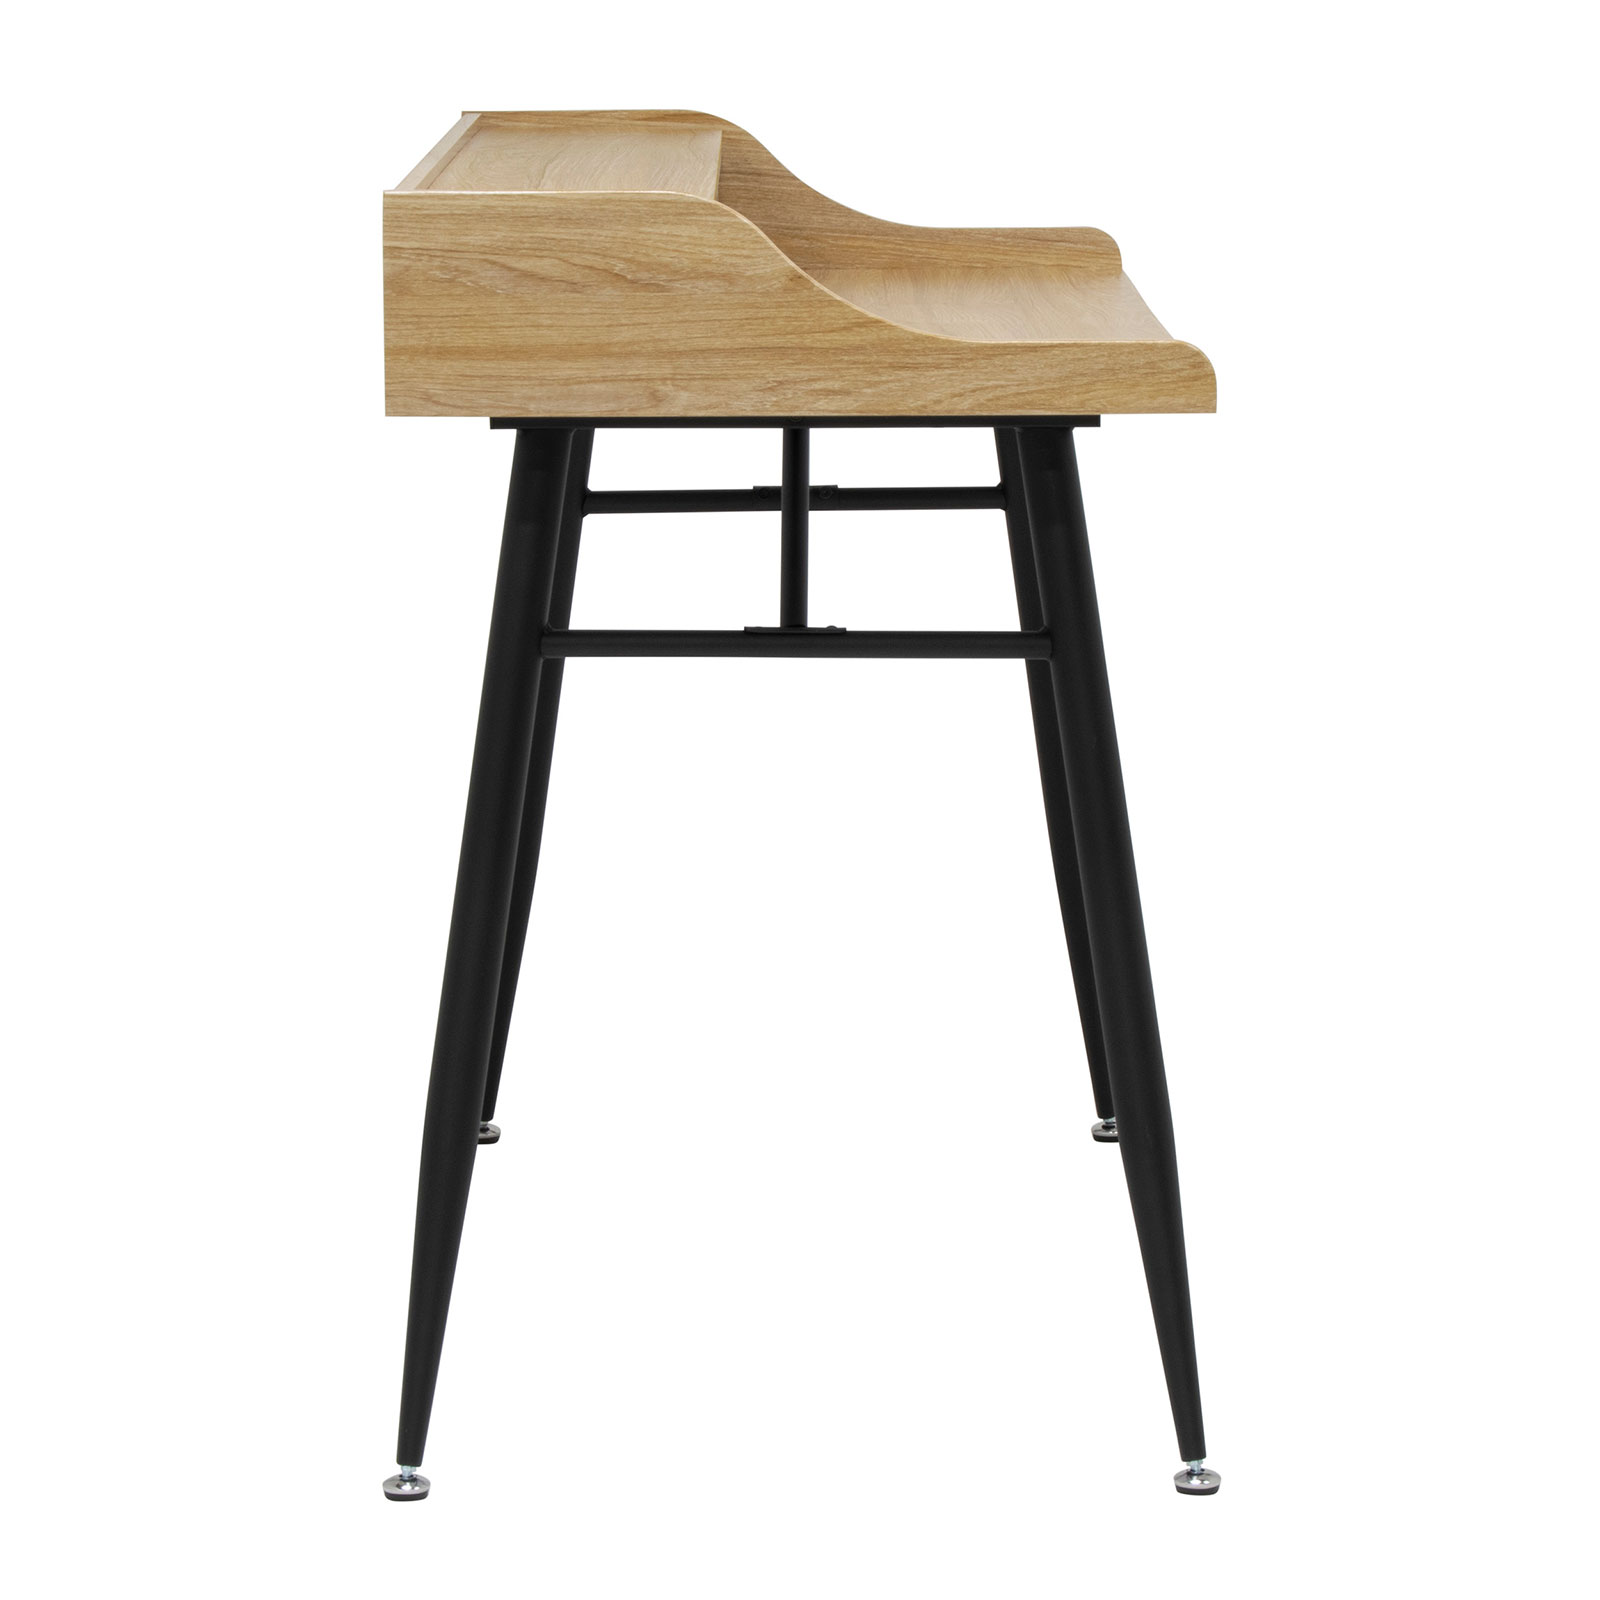 51260-Woodford-Writing-Desk-side